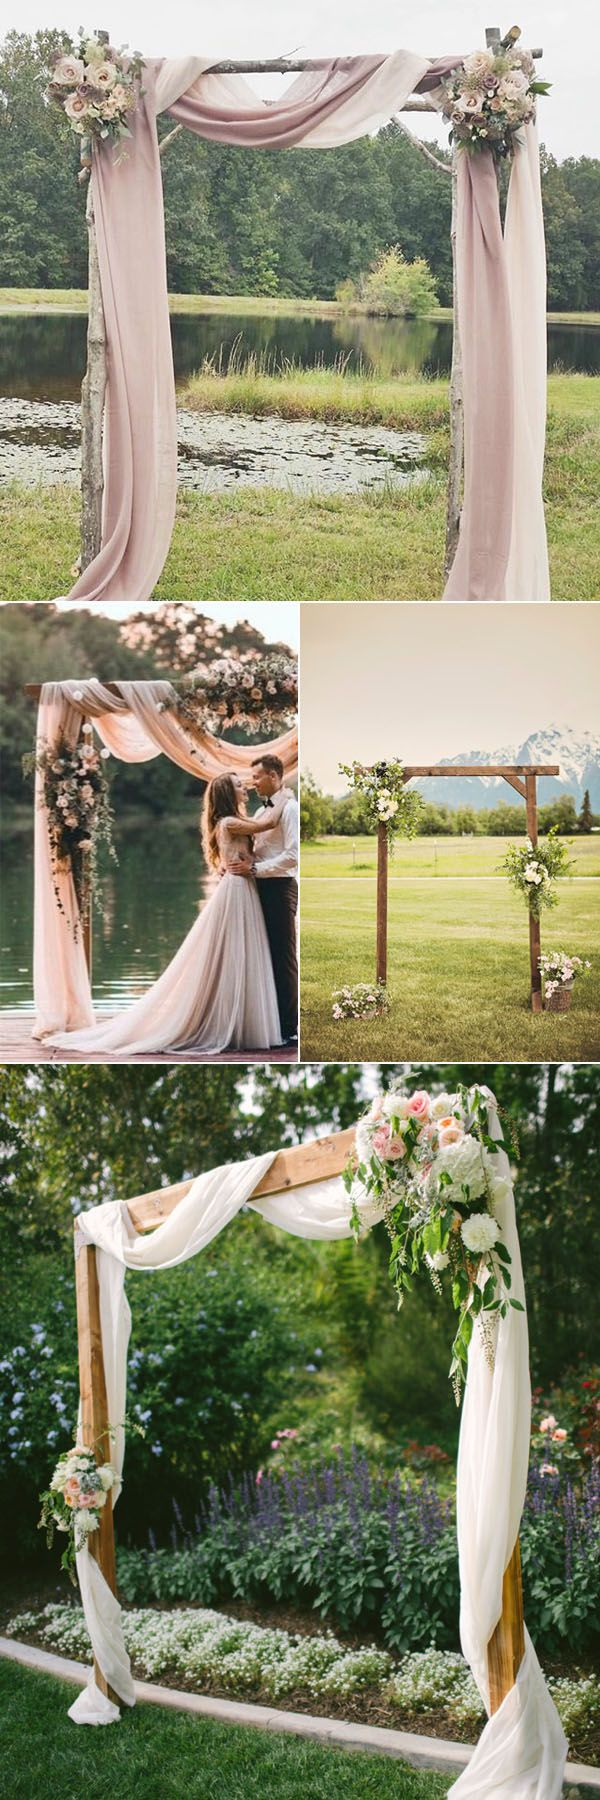 32 rustic wedding decoration ideas to inspire your big day wedding rustic wedding arches for your outdoor wedding ideas junglespirit